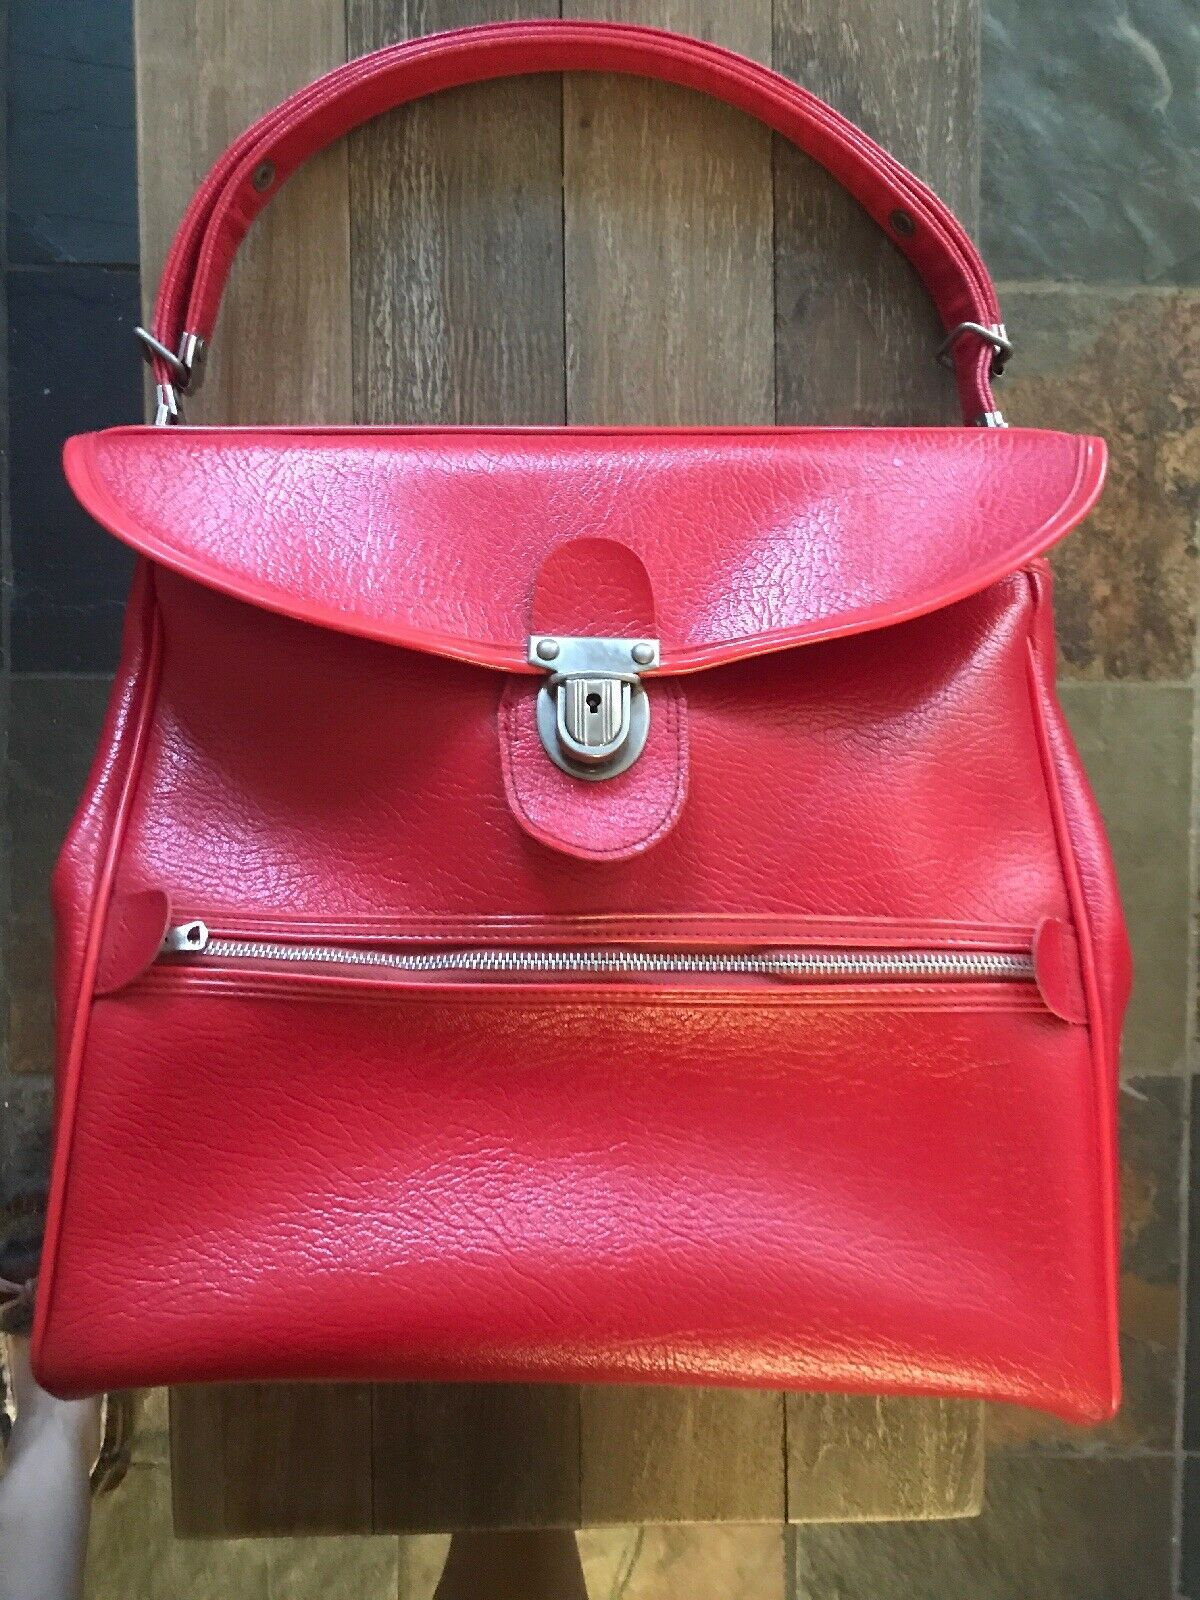 Vintage Amelia Earhart rosso Tote Carry On PO